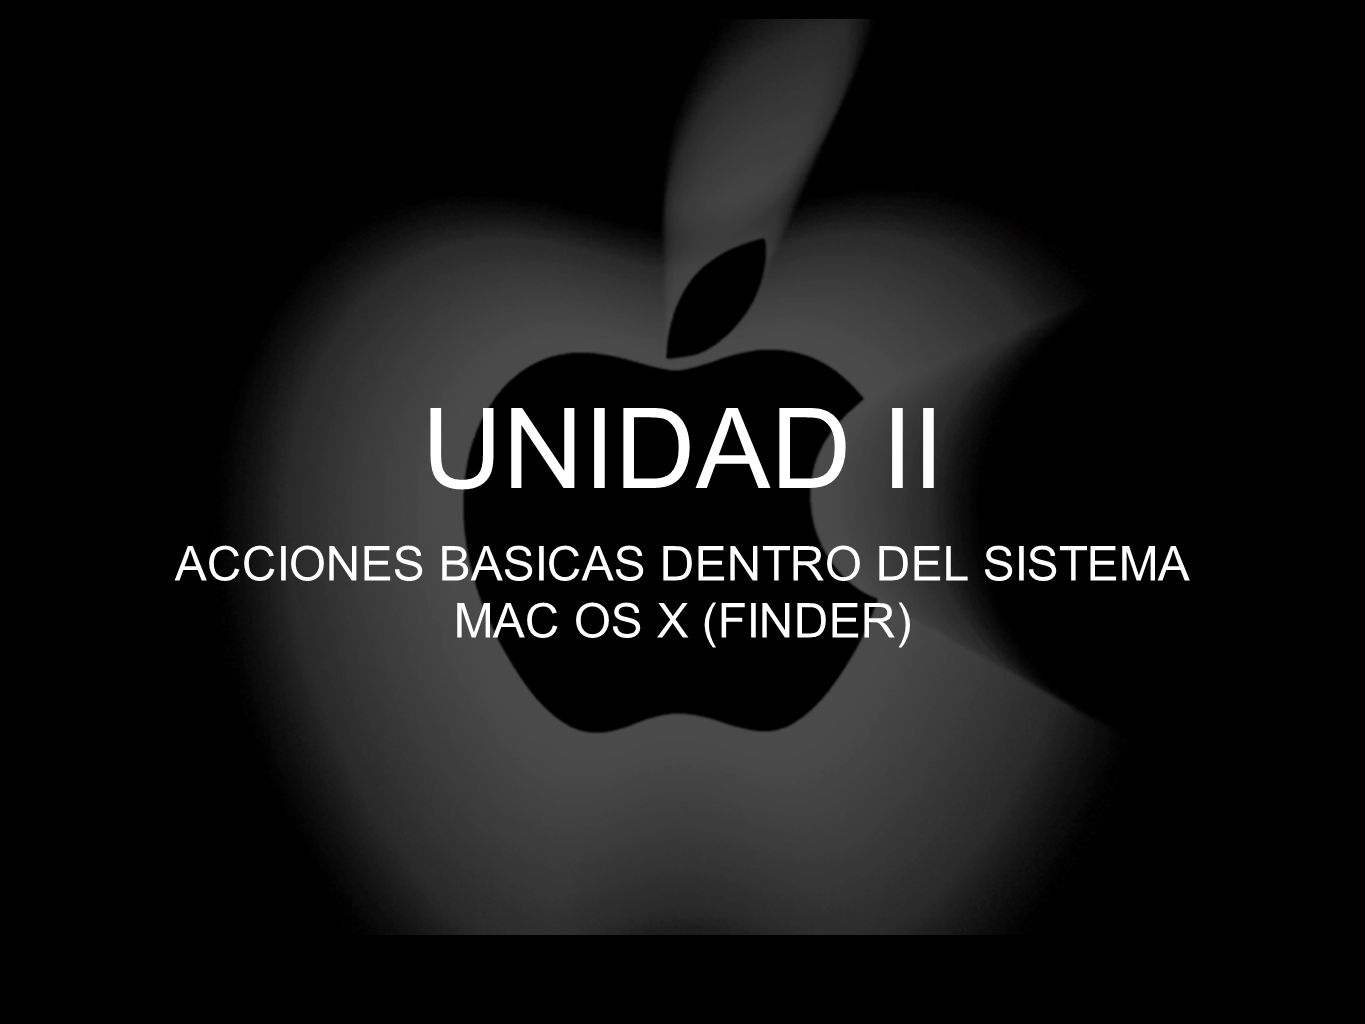 ACCIONES BASICAS DENTRO DEL SISTEMA MAC OS X (FINDER)